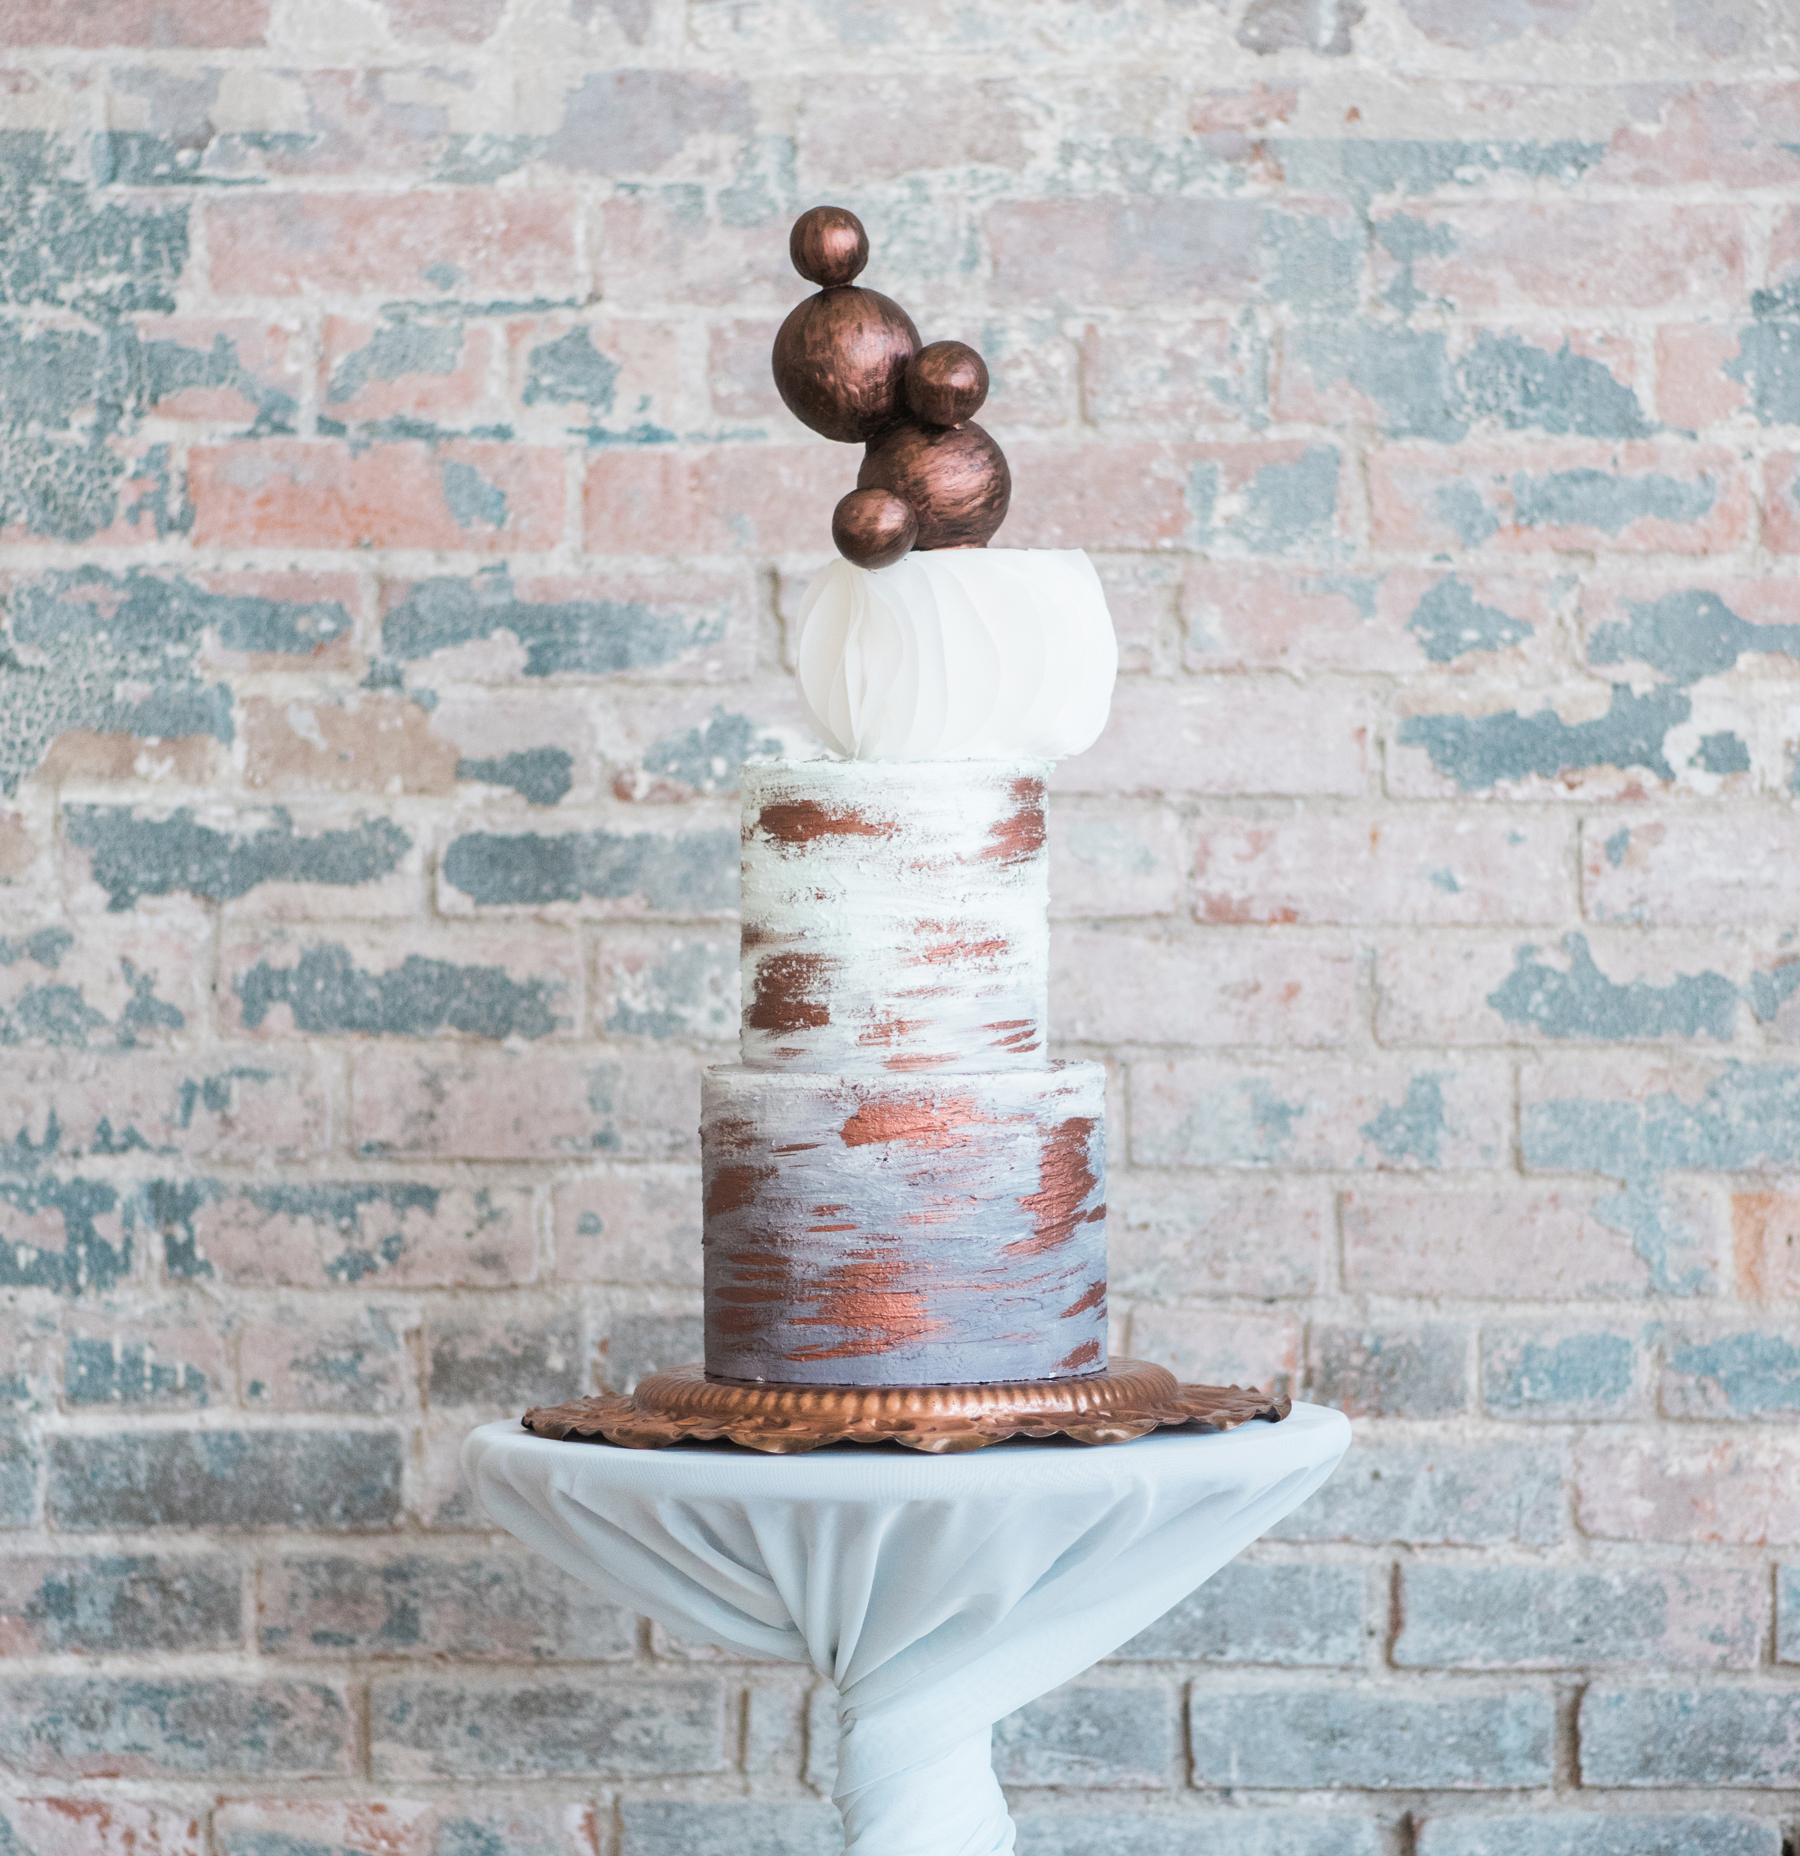 industrial_chic_wedding_cake_mass_moca_a-to-z_cakes_hybl_fannin_design_1_1800sq.jpg